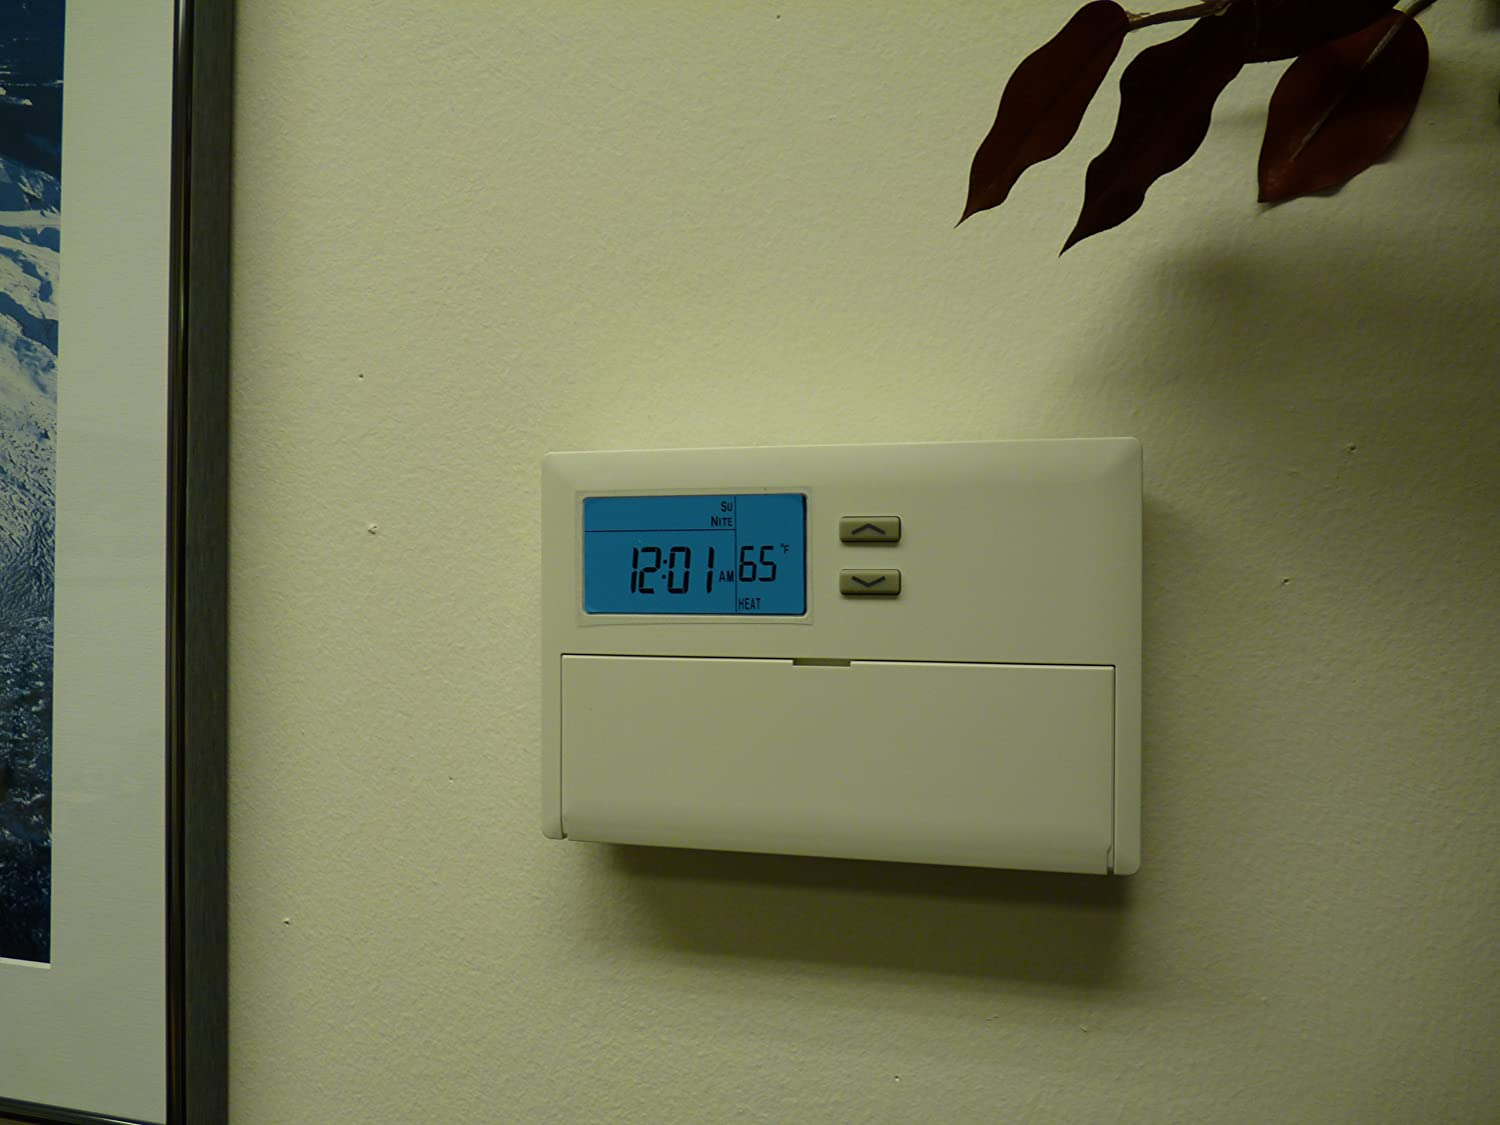 Lux TX9100E 7 Day Universal Programmable Thermostat - Locking Thermostat -  Amazon.com